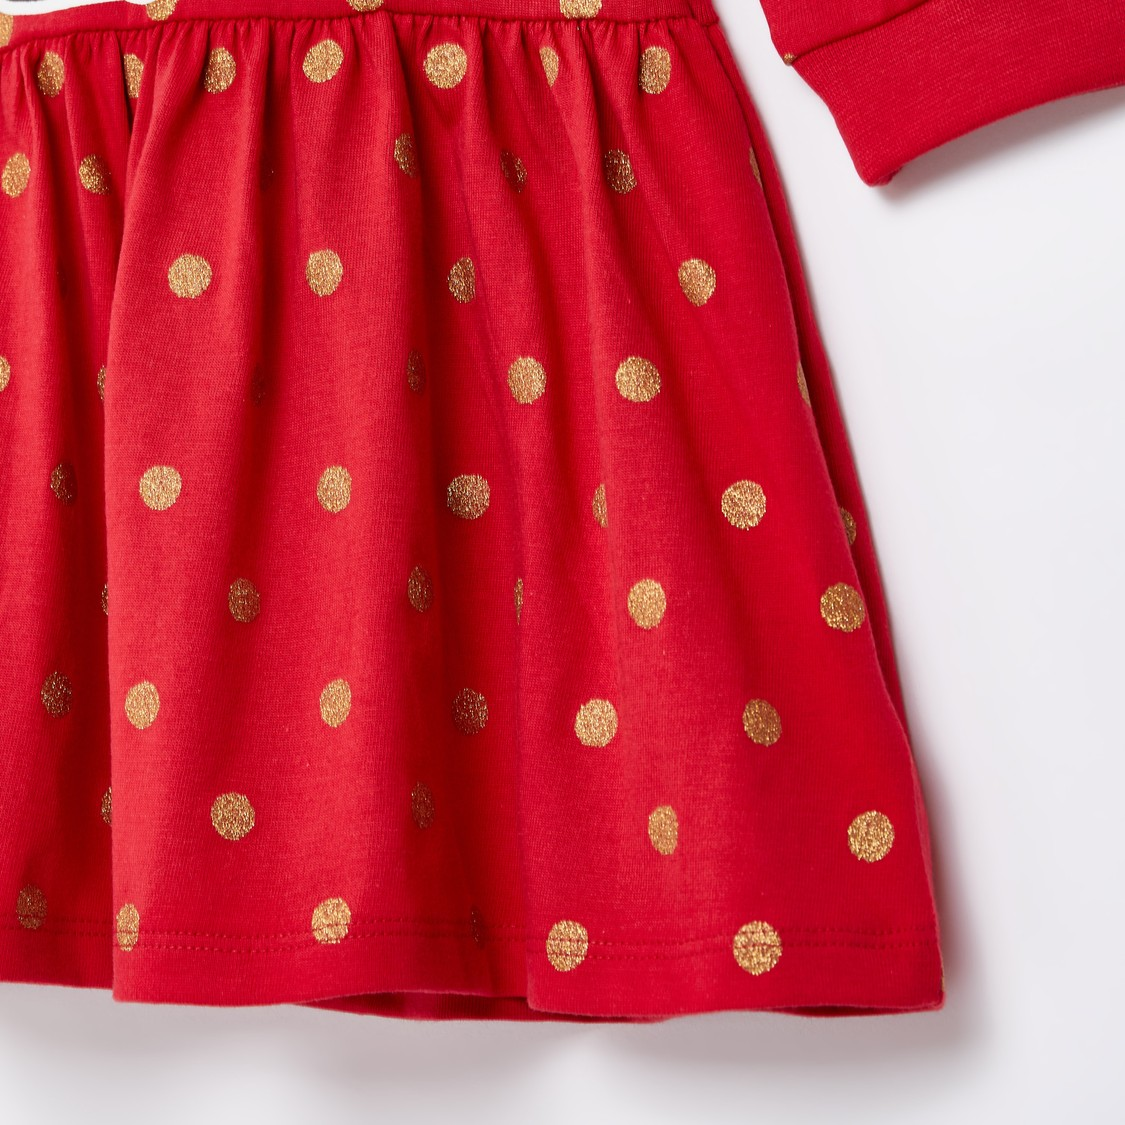 Minnie Mouse Graphic Print Dress with Round Neck and Long Sleeves